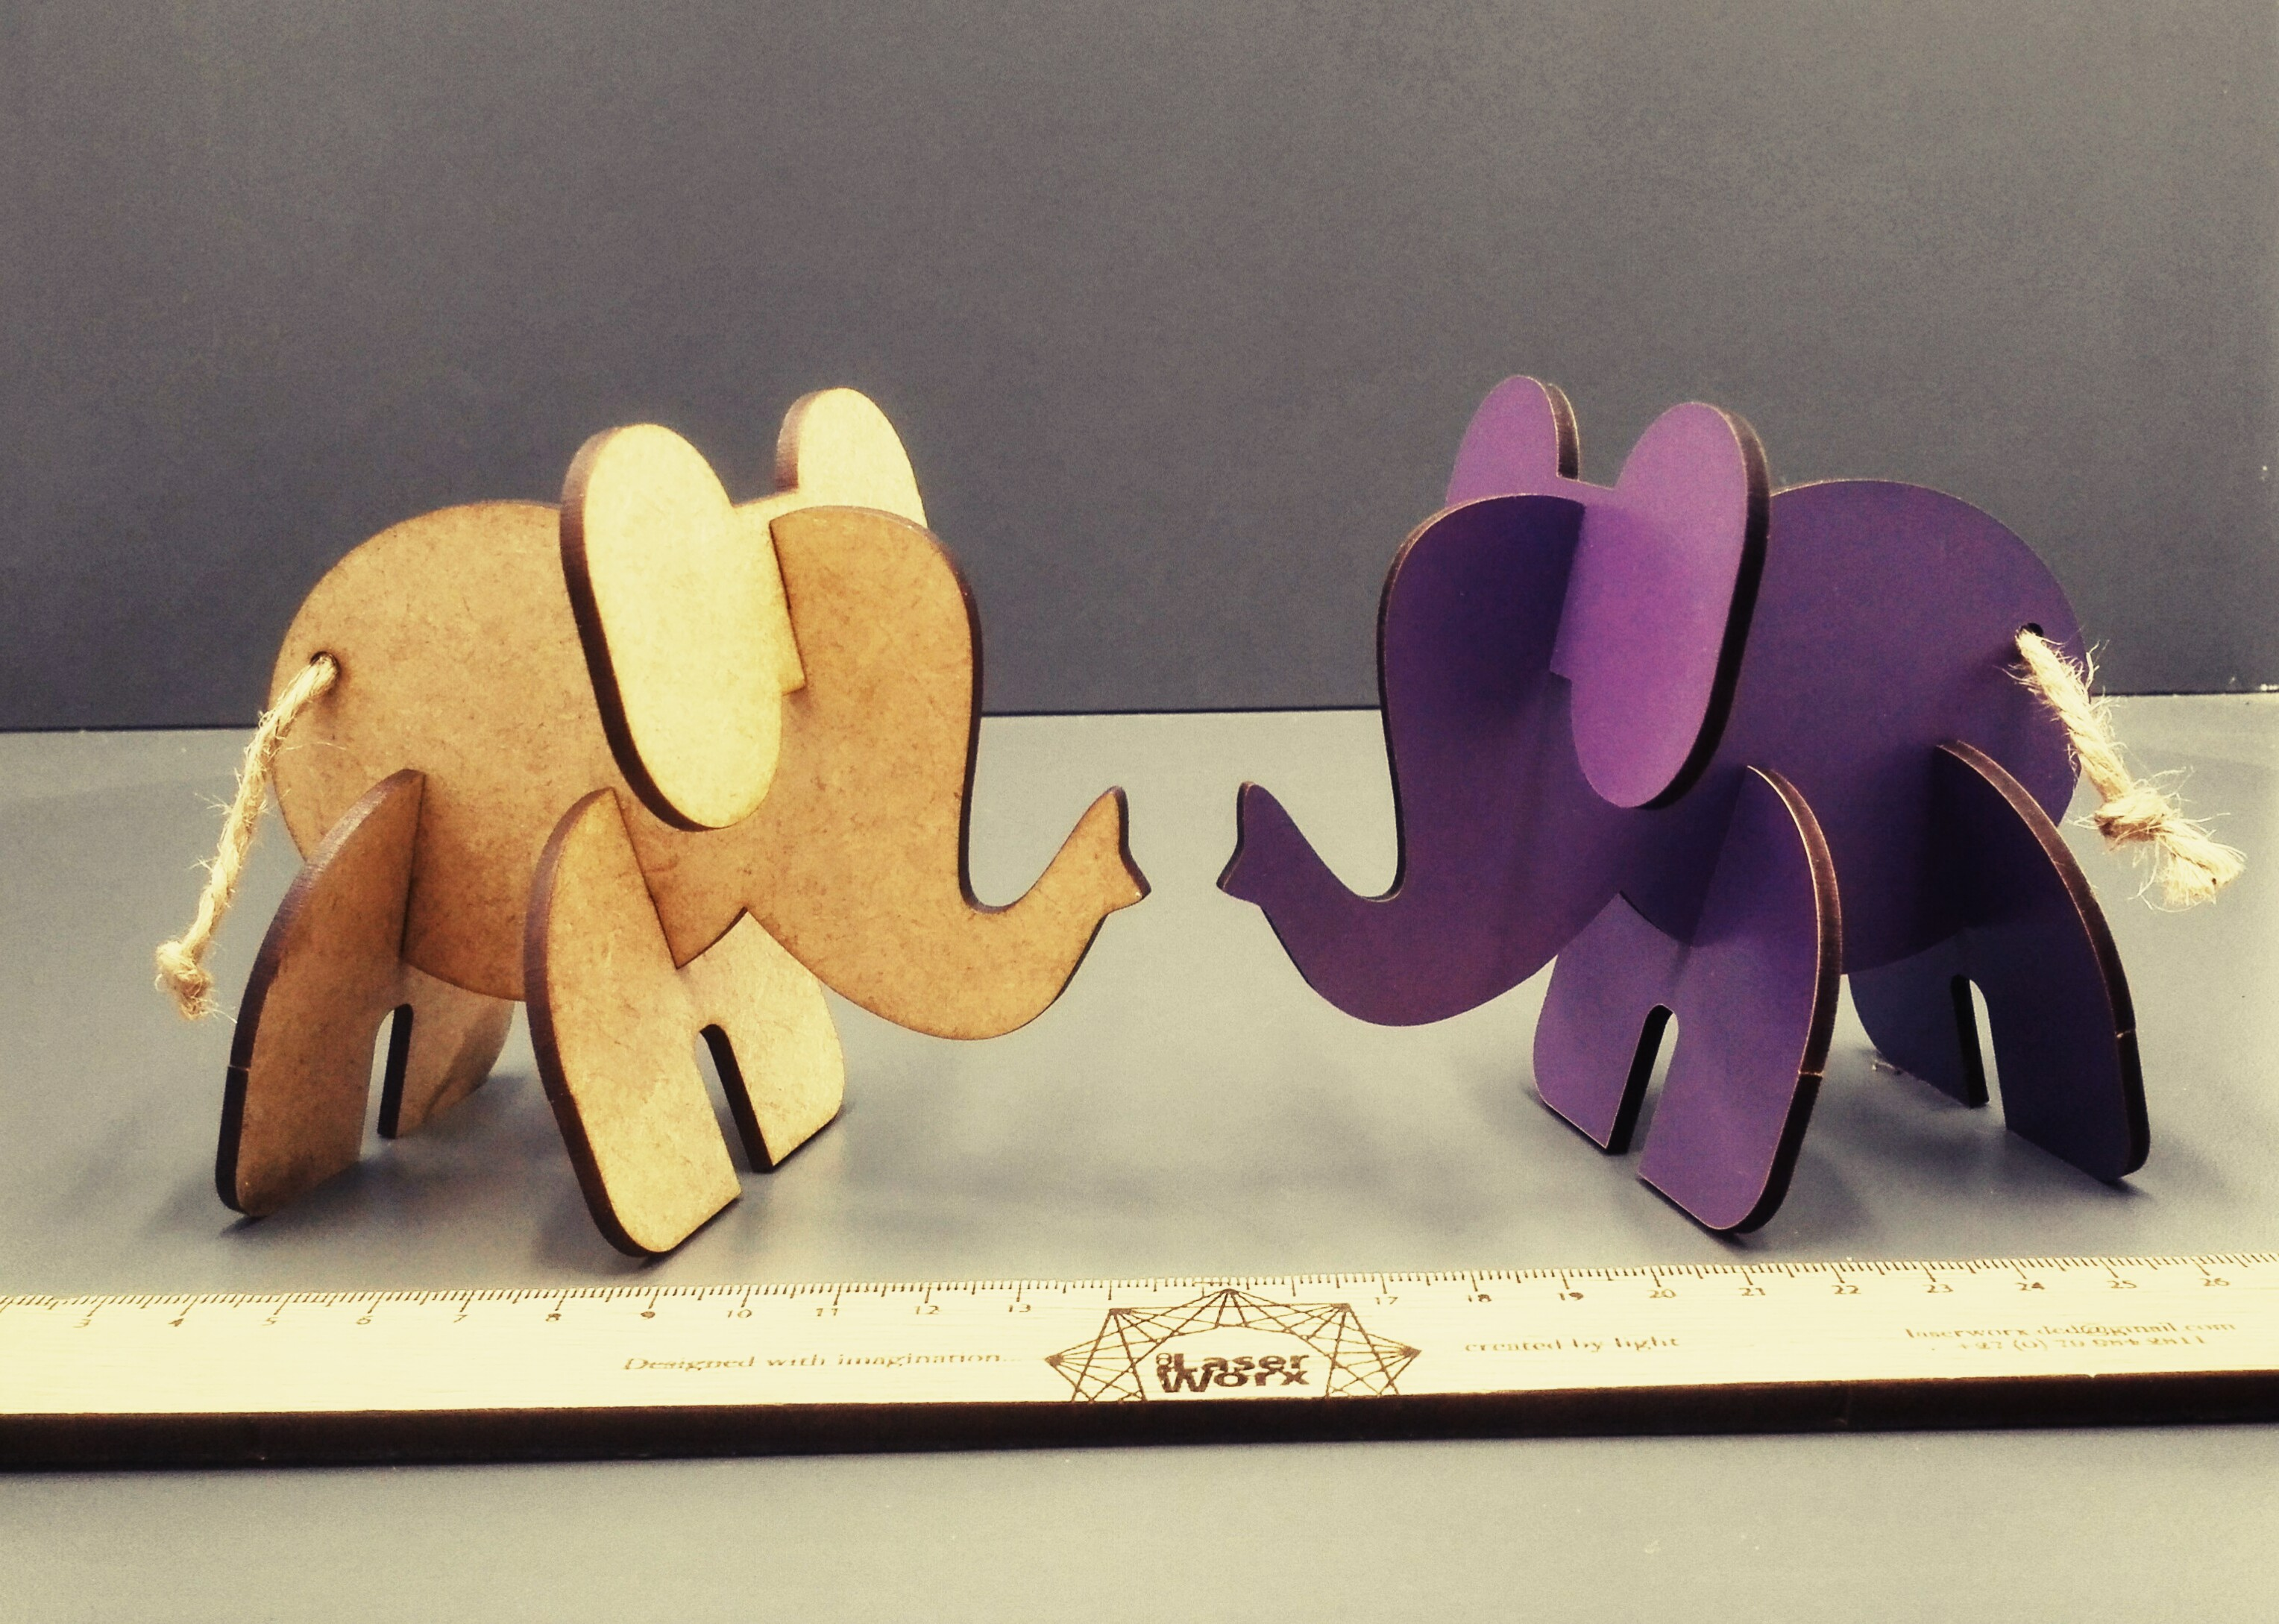 Slot together elephant puzzles